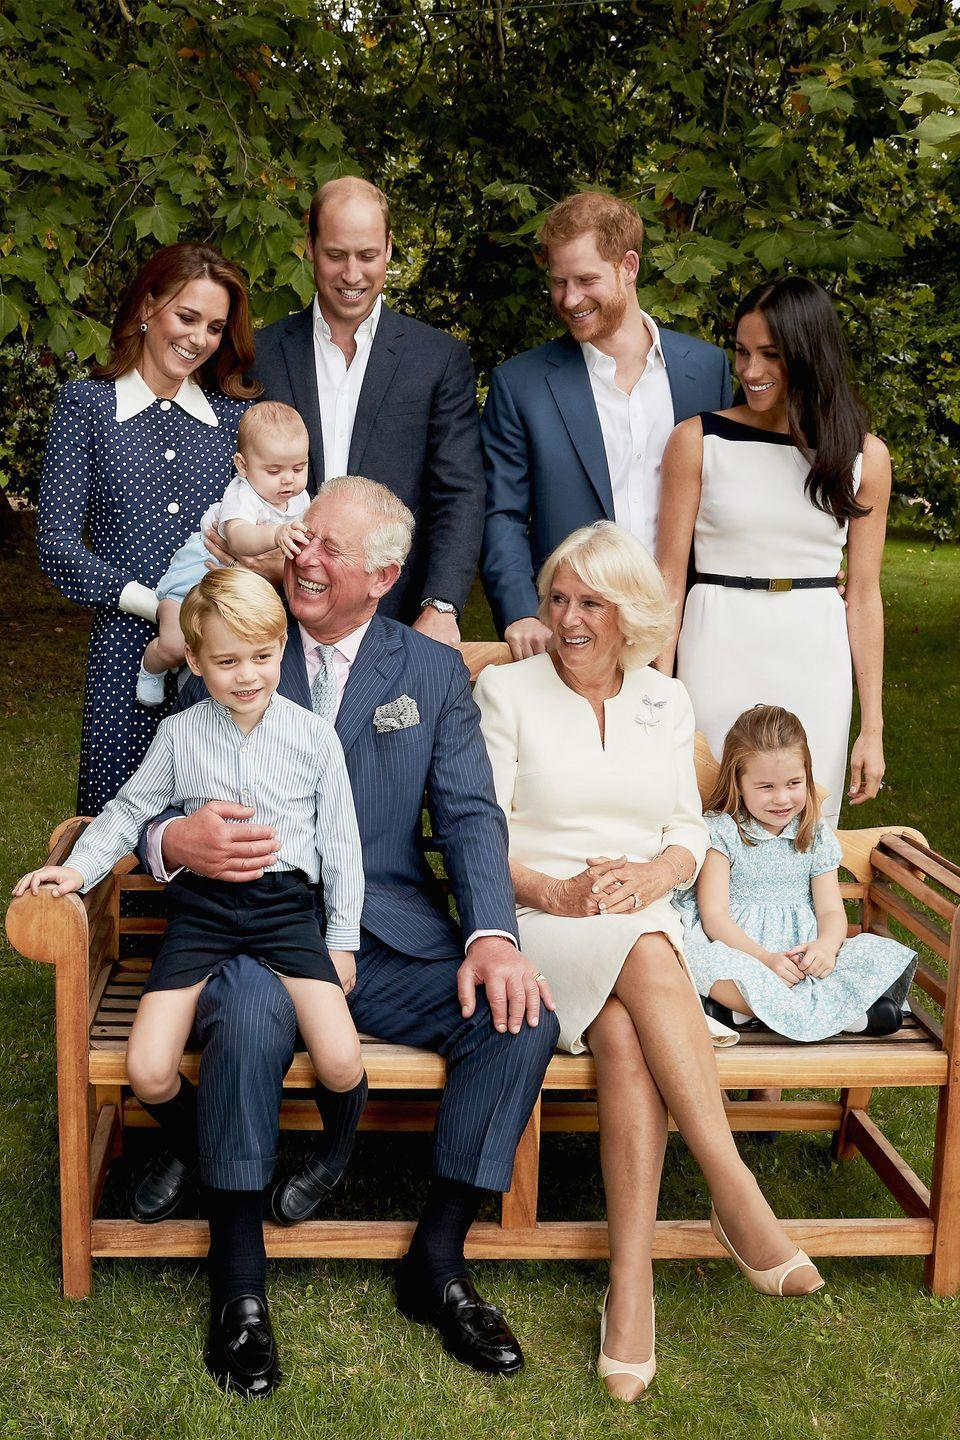 <p>Prince Louis grabs his grandpa's nose as the rest of the royal family watches in delight. </p>